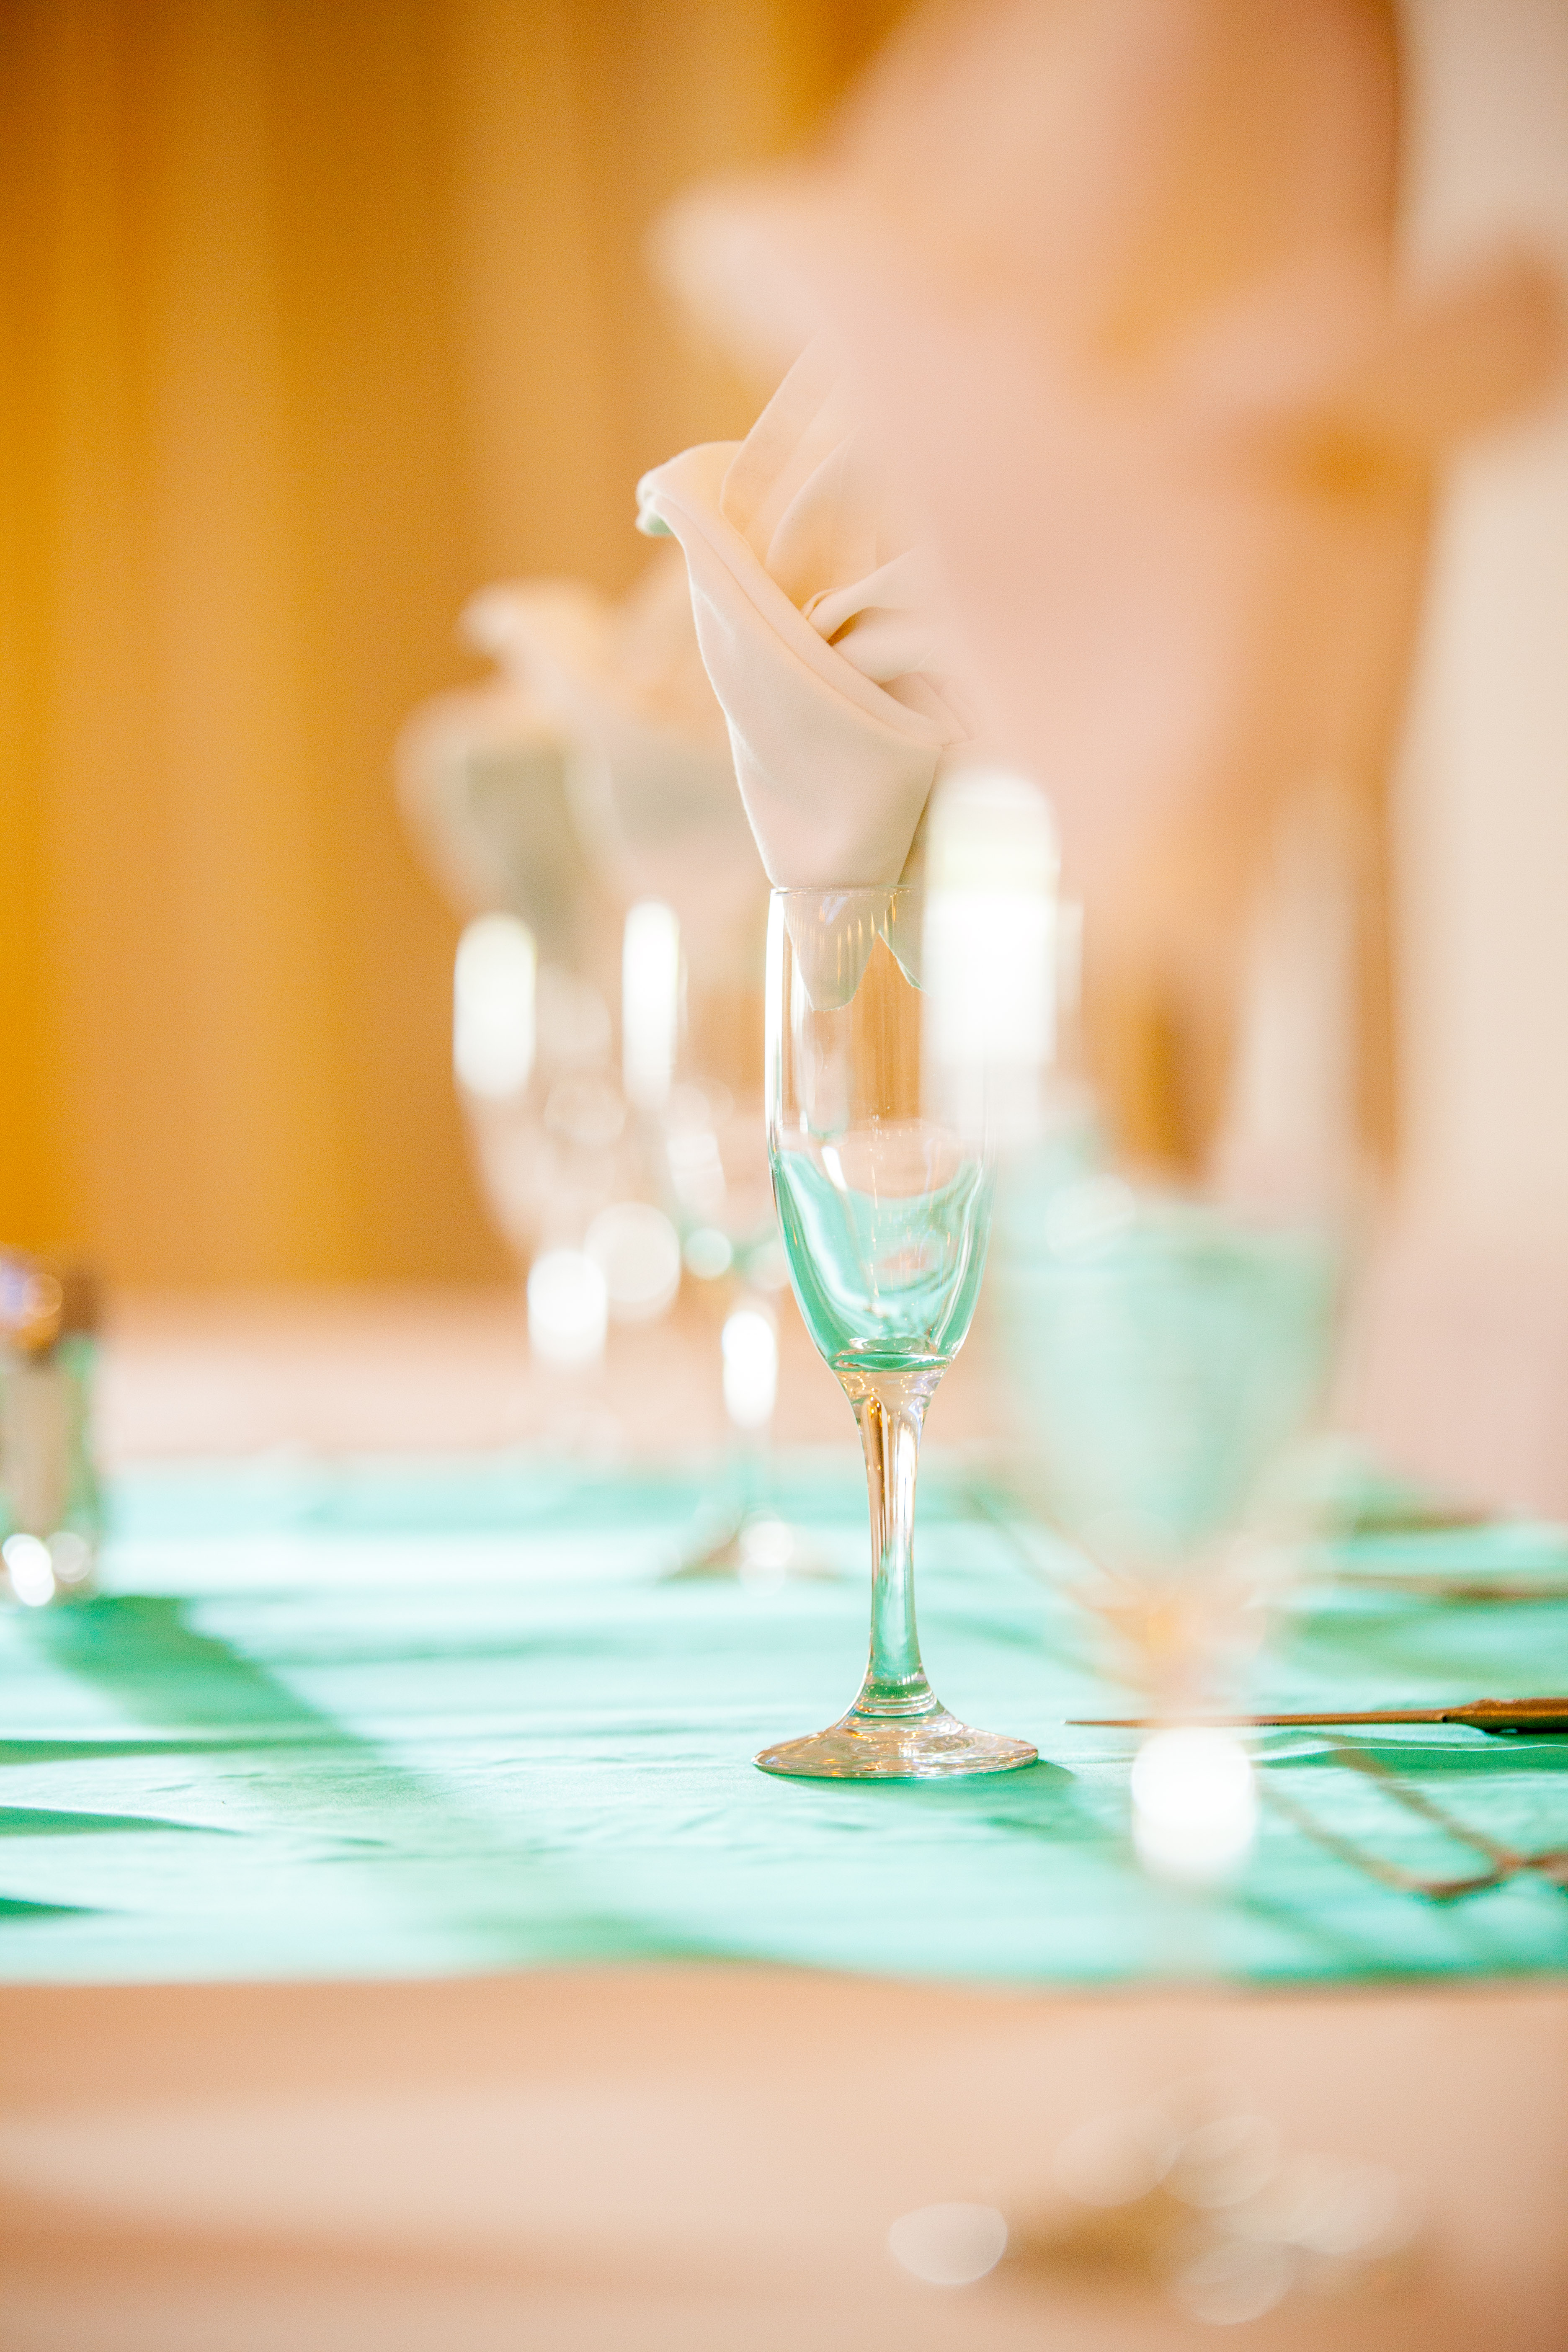 Catering Services in Los Angeles